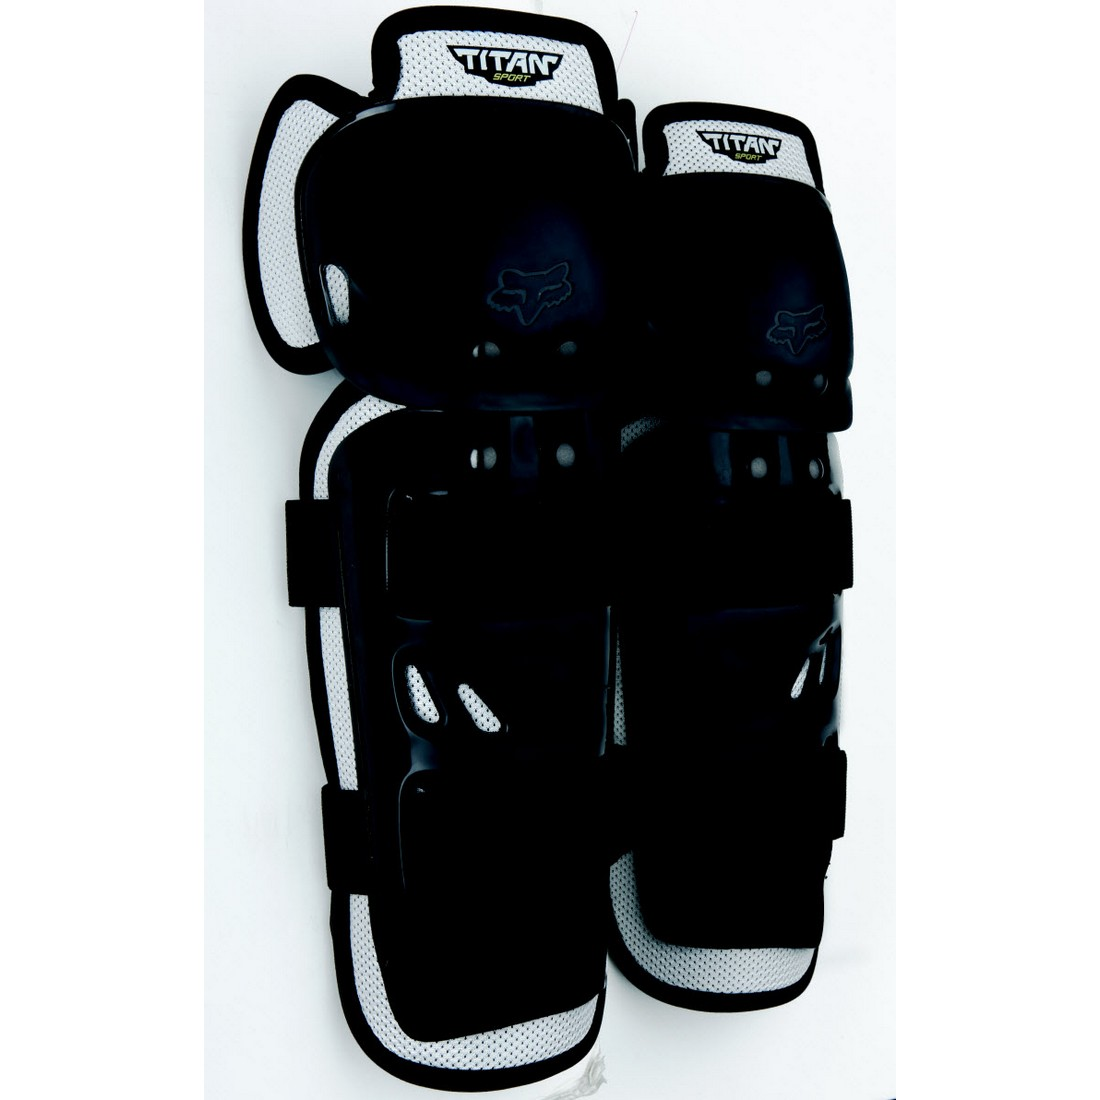 Fox - Titan Sport Youth Knee/Shin Guard